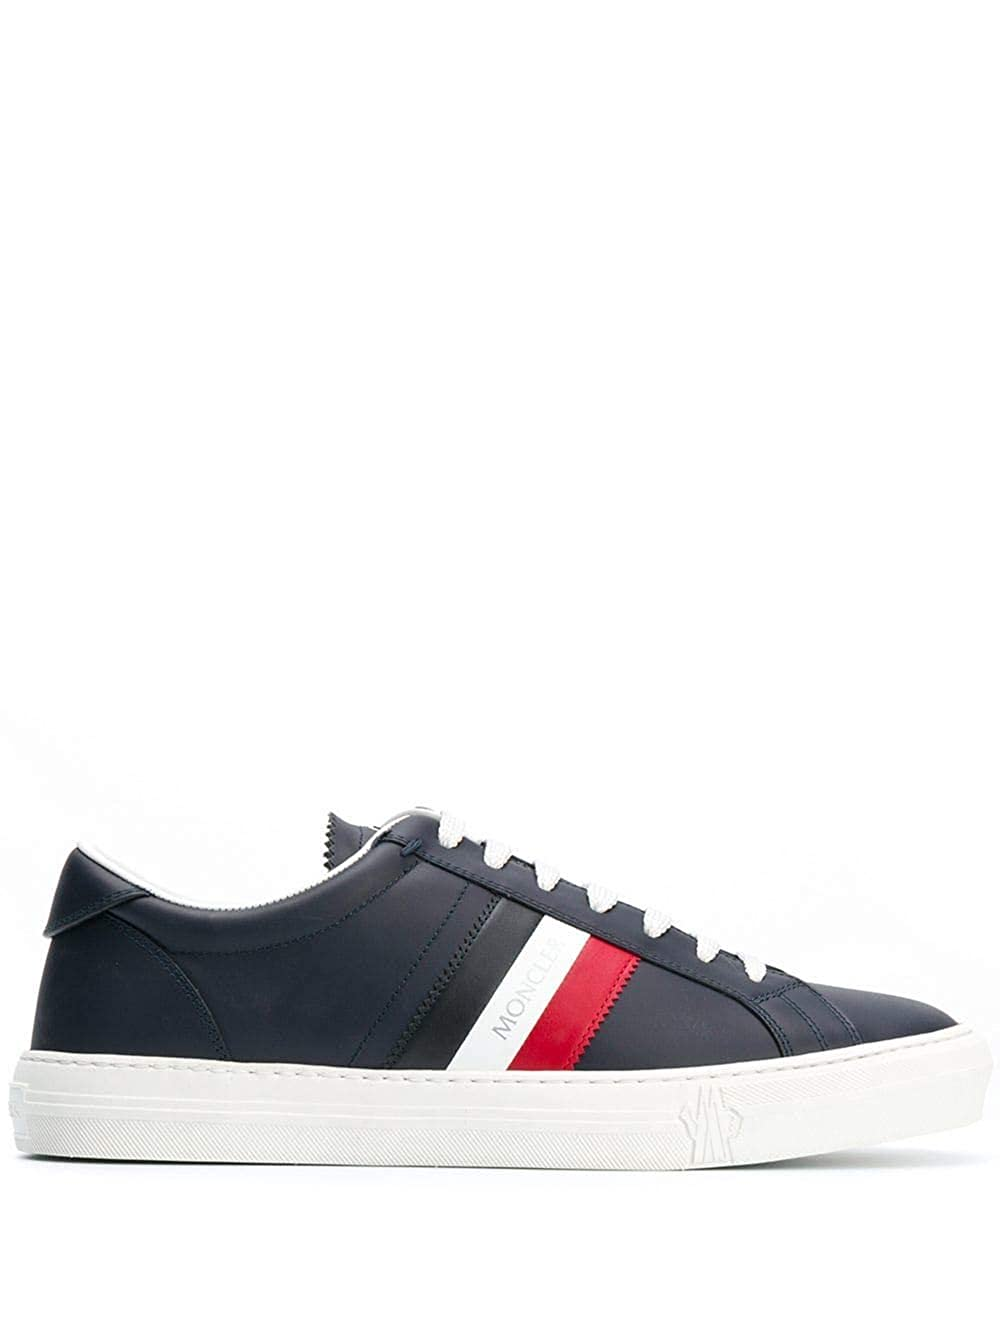 - Moncler Men's 103760001A9A778 bluee Leather Sneakers